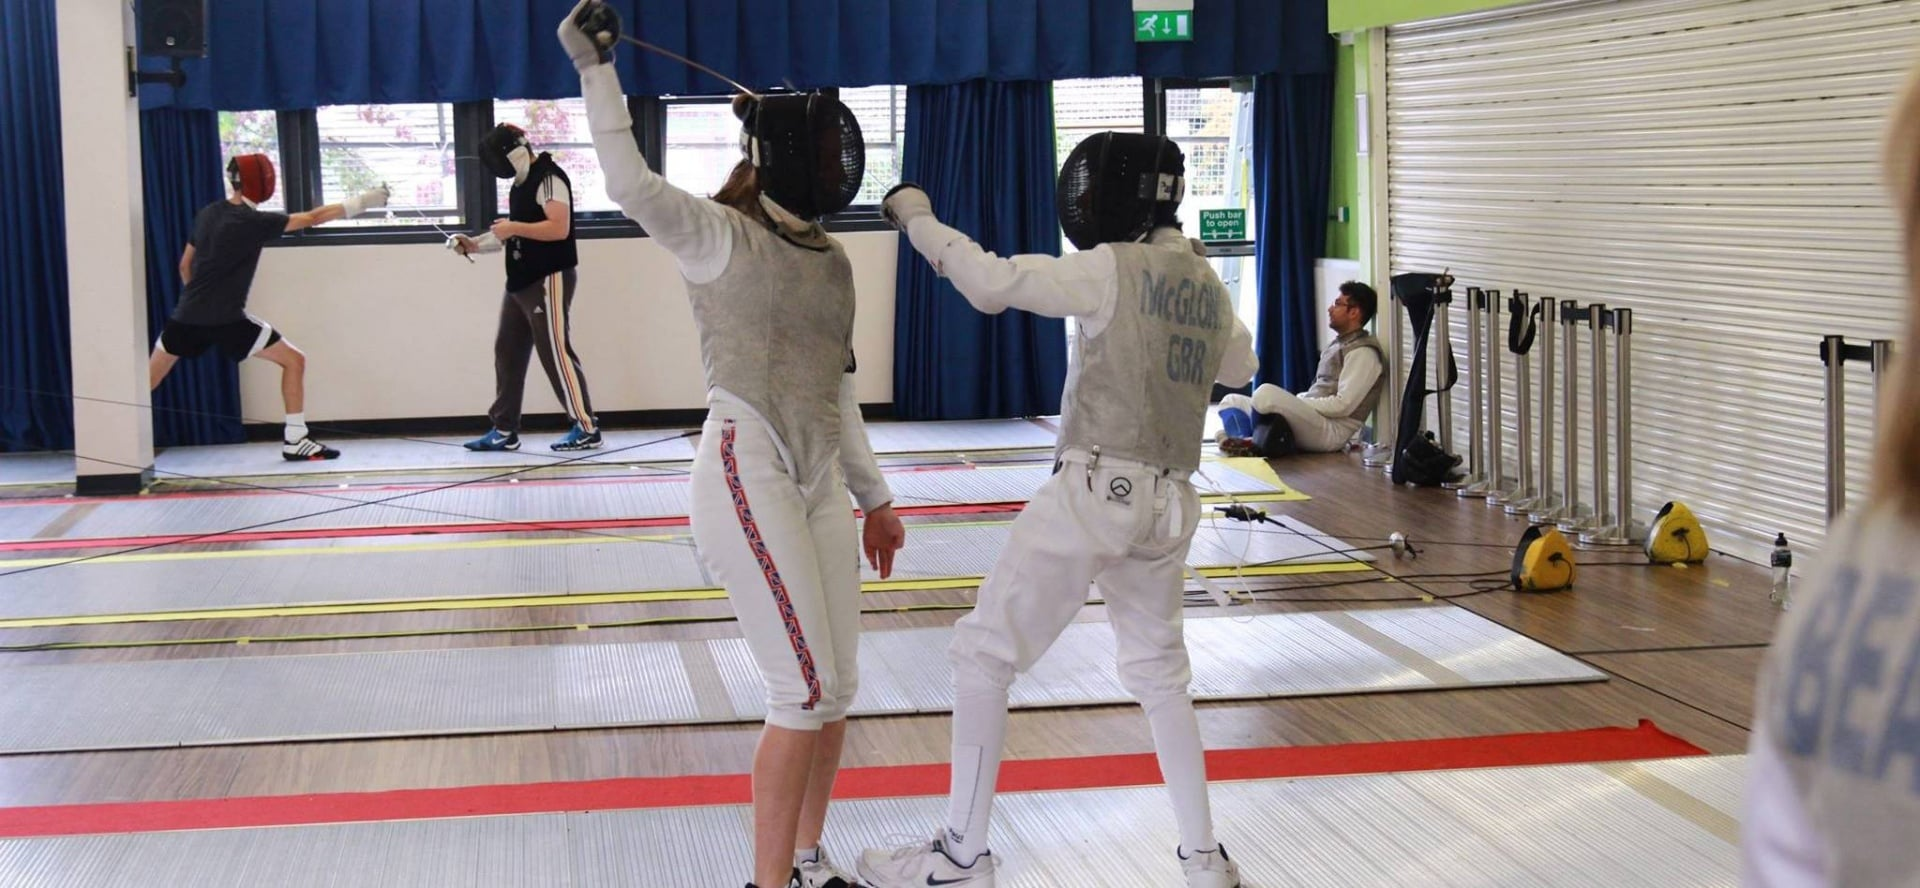 3 Hour Fencing Lesson In London-5